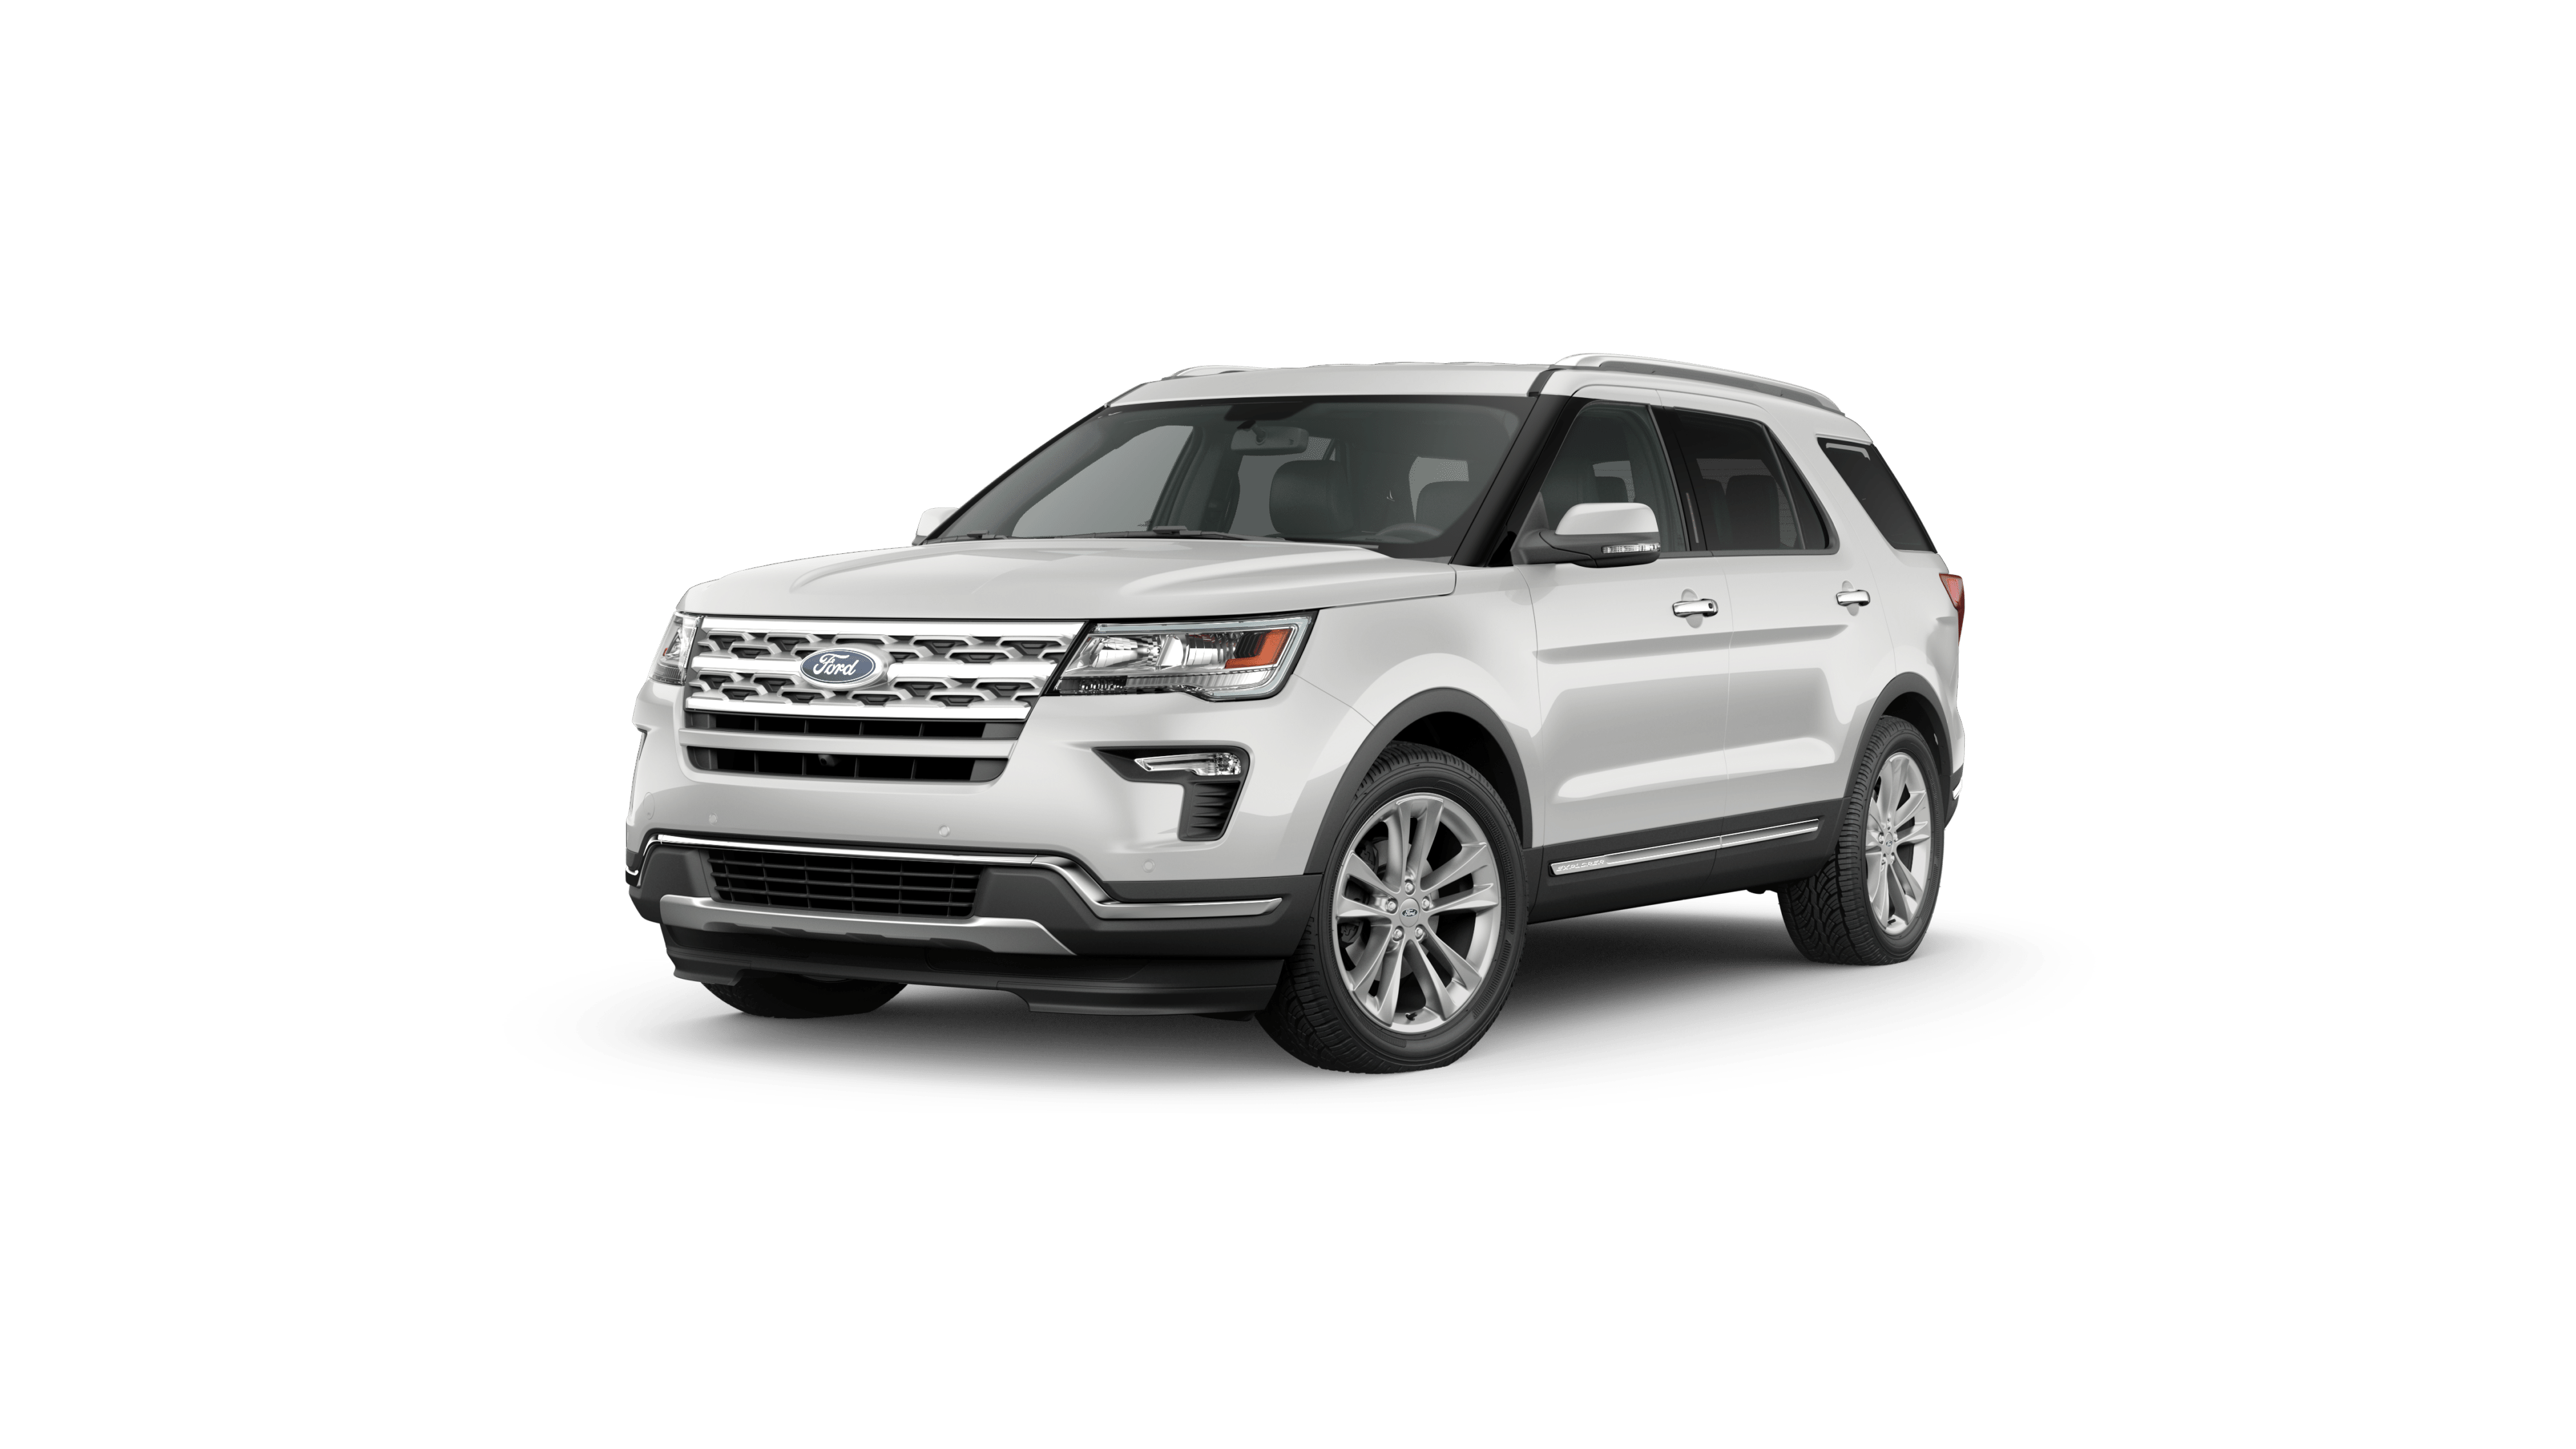 2019 Ford Explorer Vehicle Photo in Souderton, PA 18964-1038